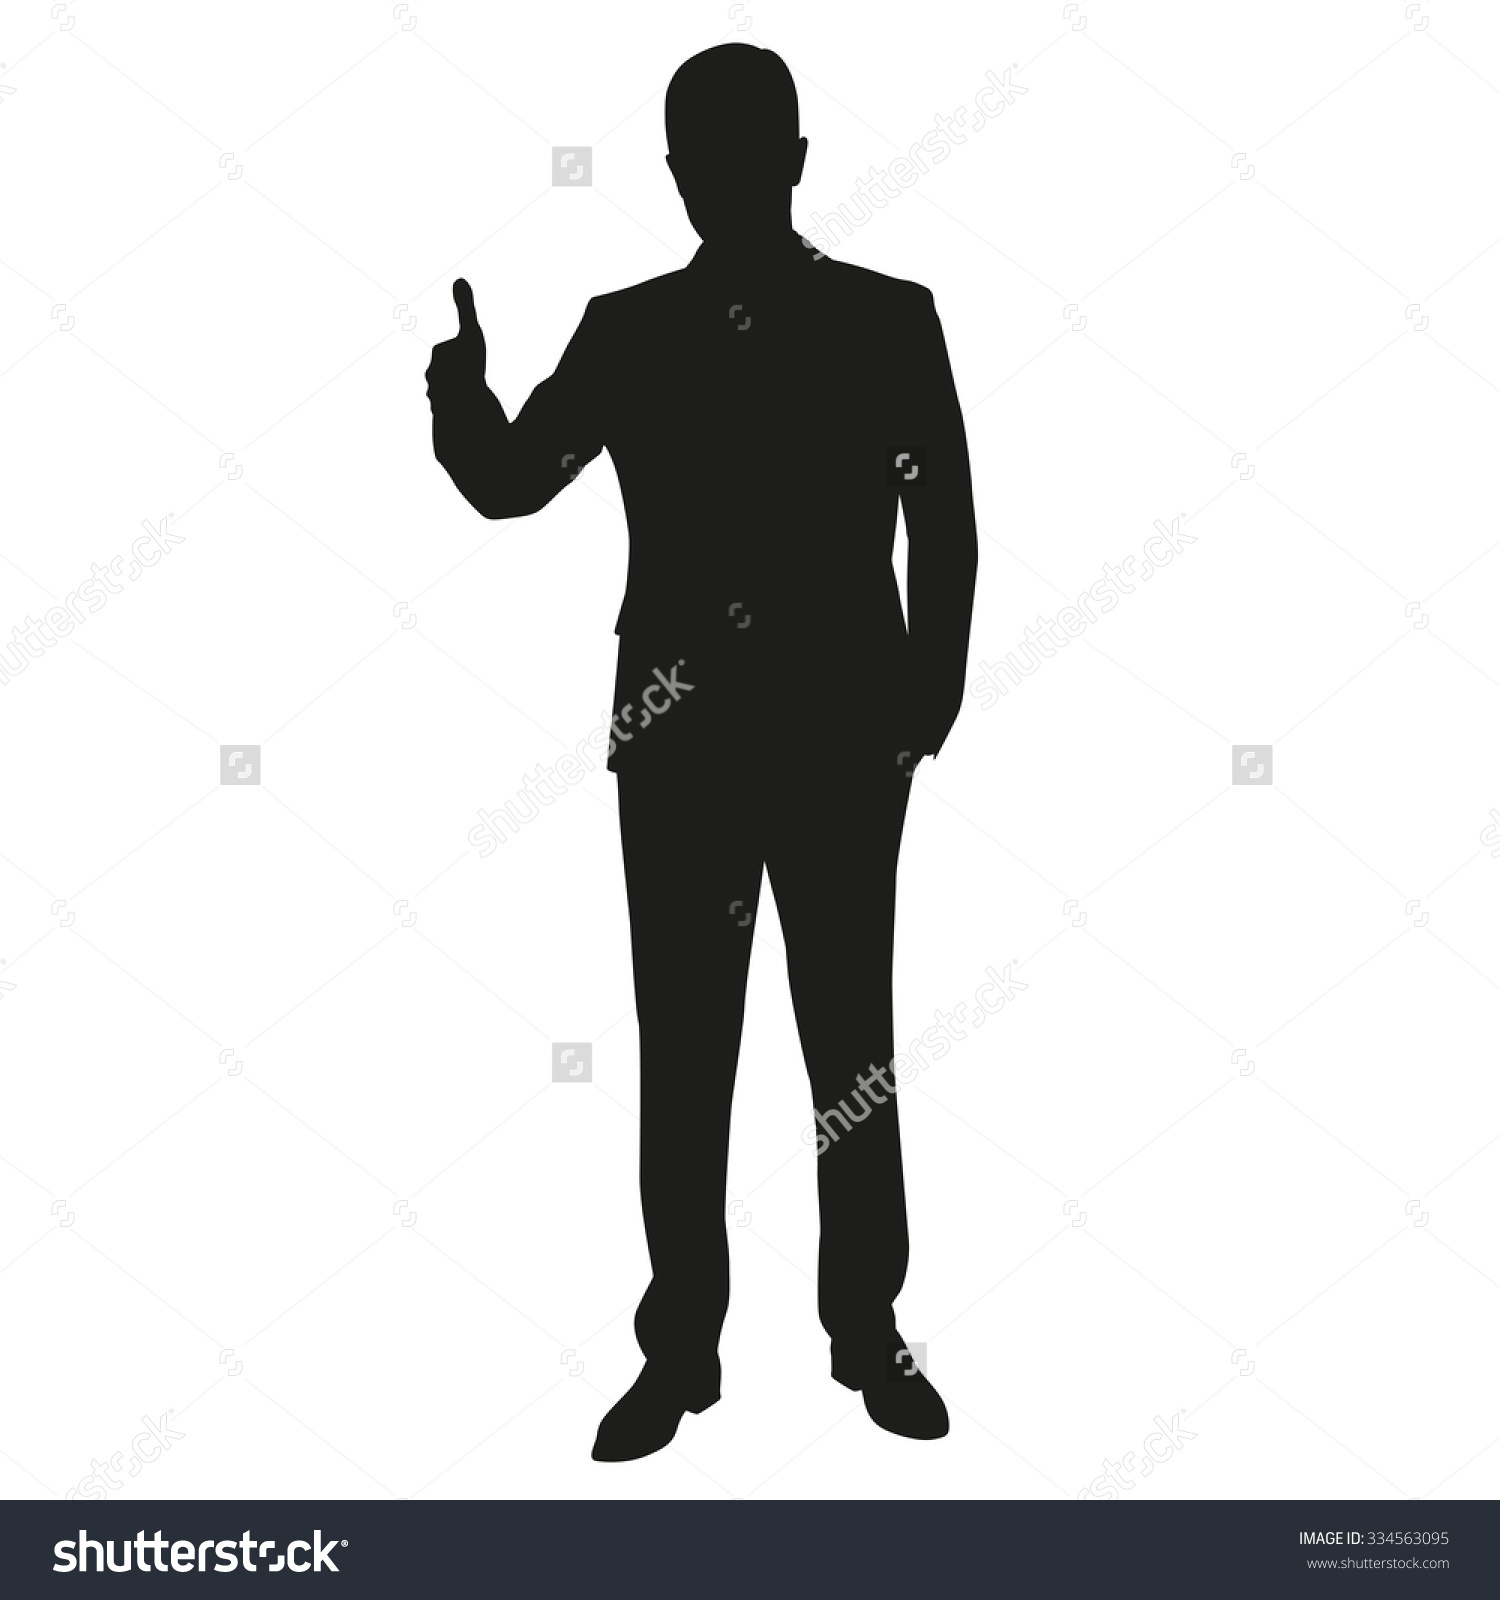 Man clipartfest with sign. Clipart thumbs up silhouette